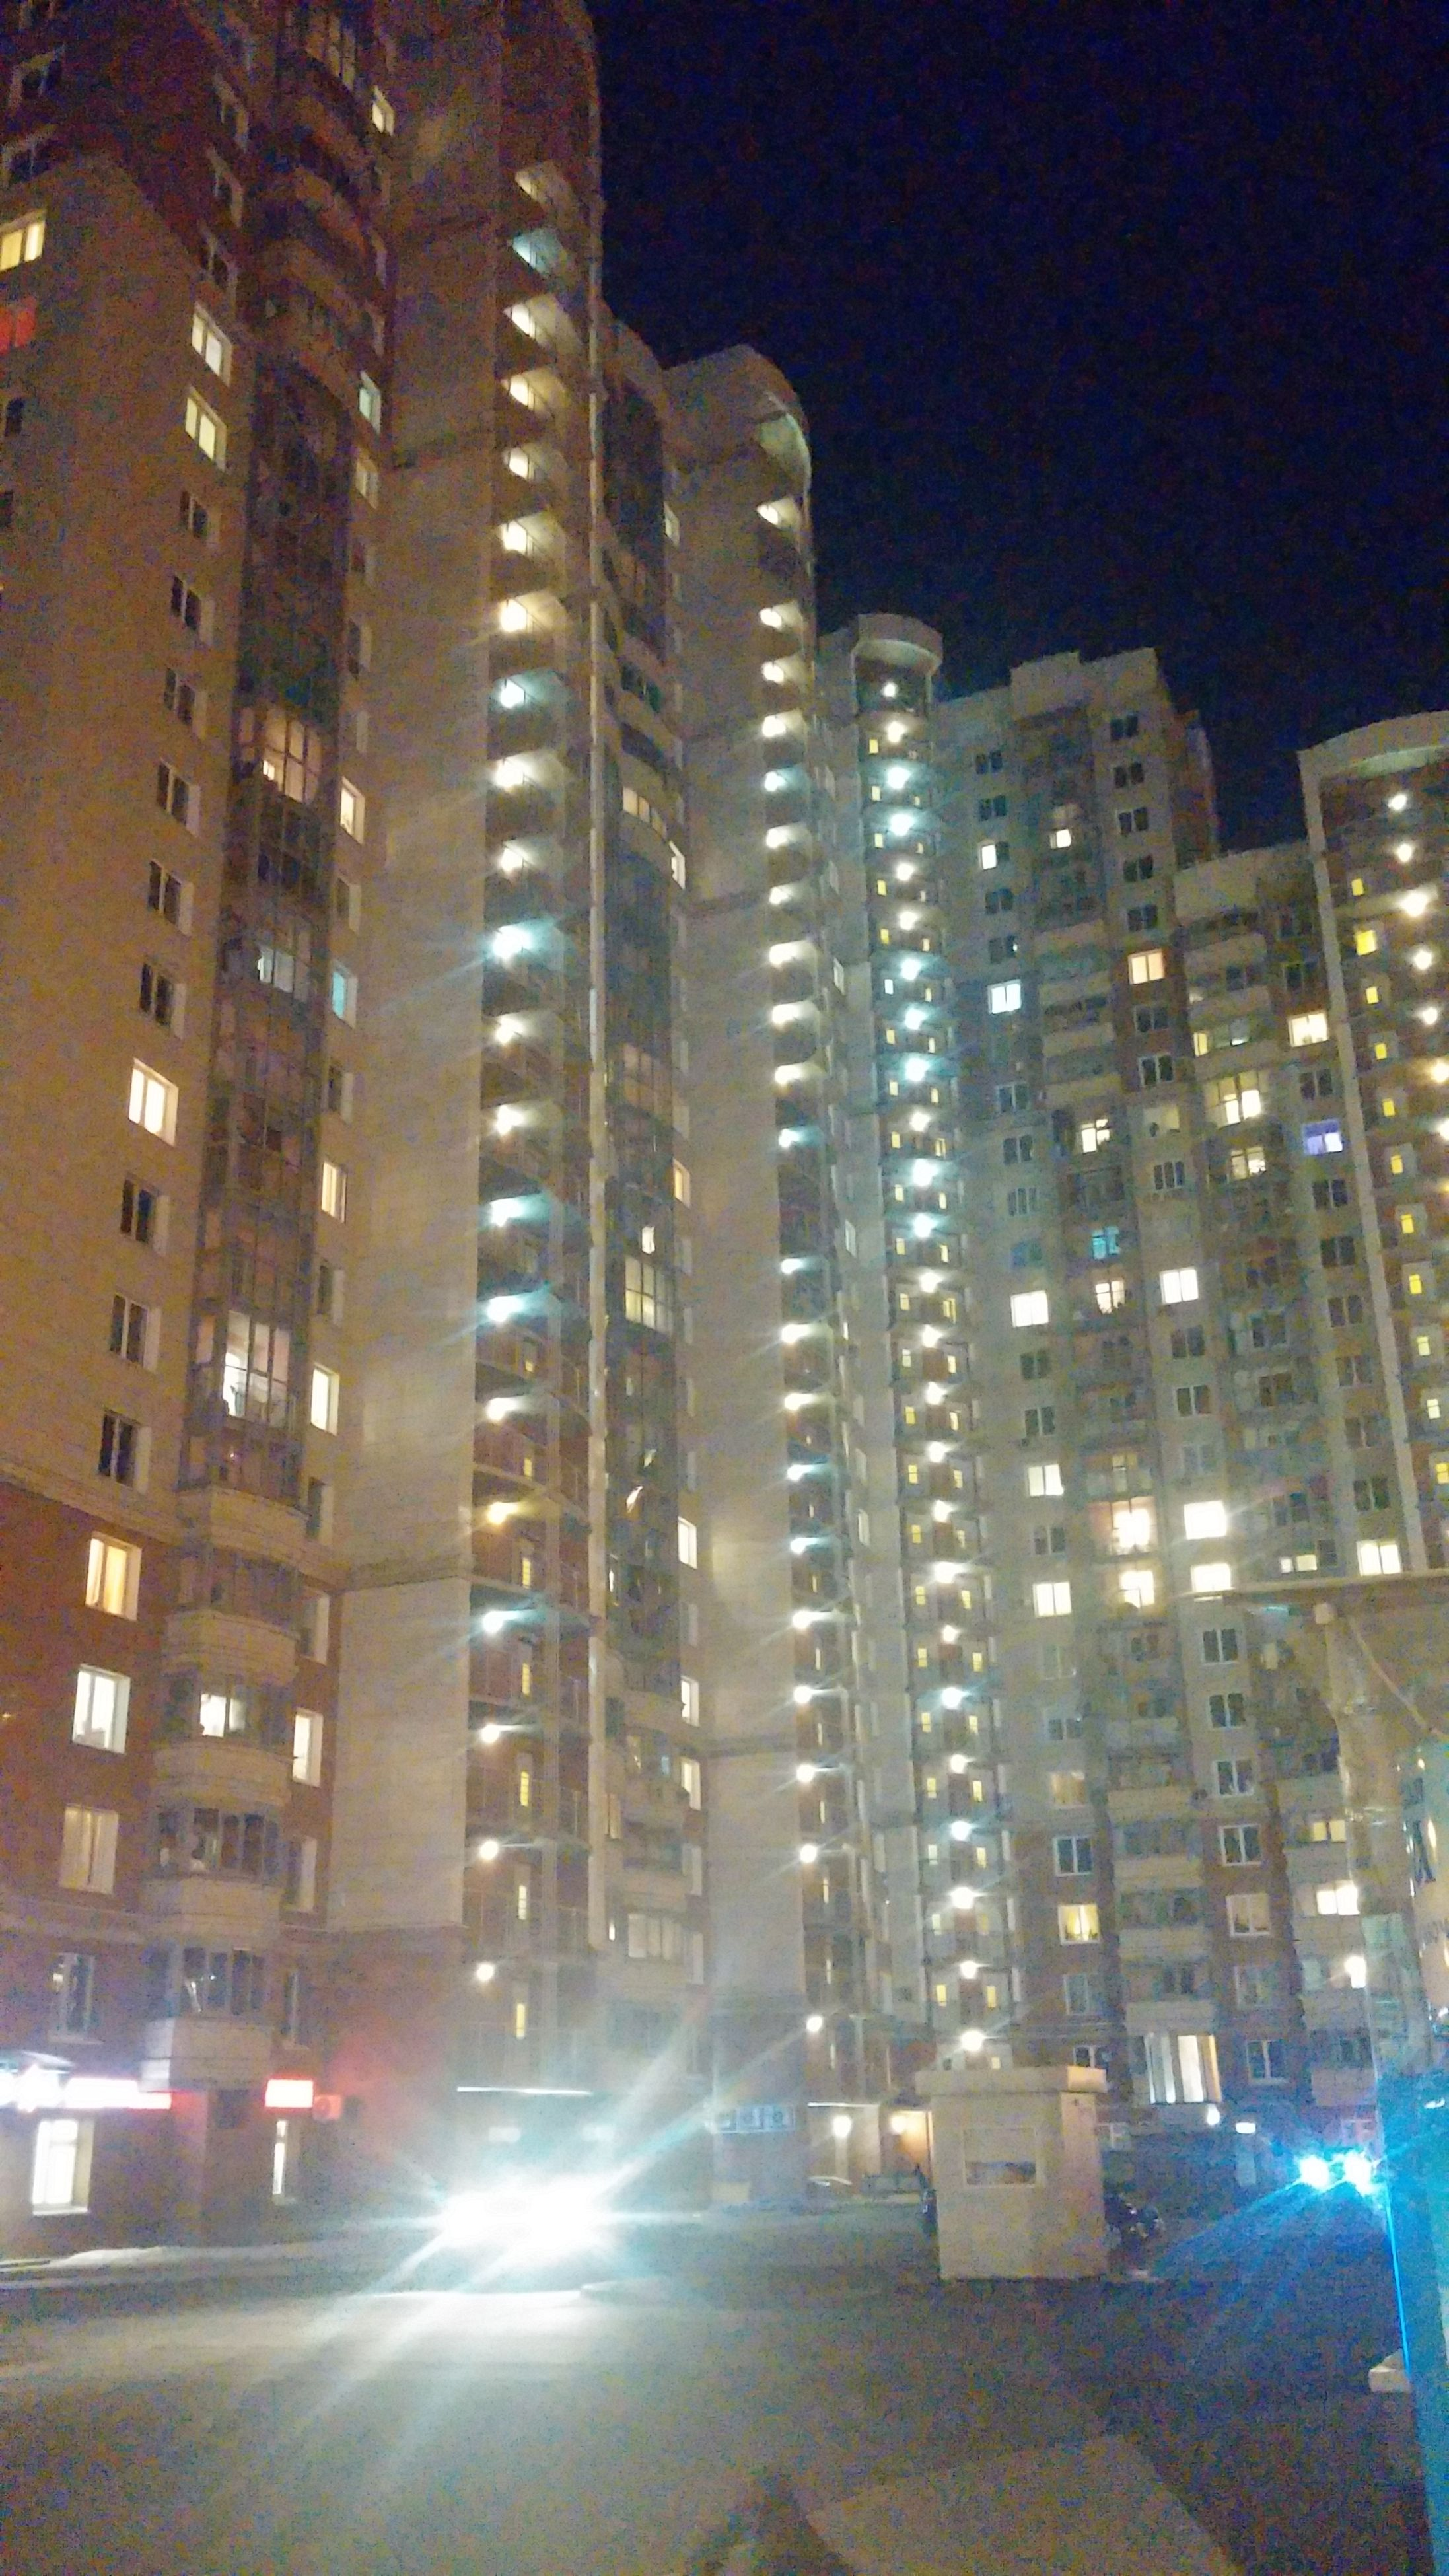 building exterior, architecture, illuminated, night, built structure, city, low angle view, tall - high, building, skyscraper, tower, travel destinations, capital cities, city life, famous place, light - natural phenomenon, outdoors, travel, office building, street